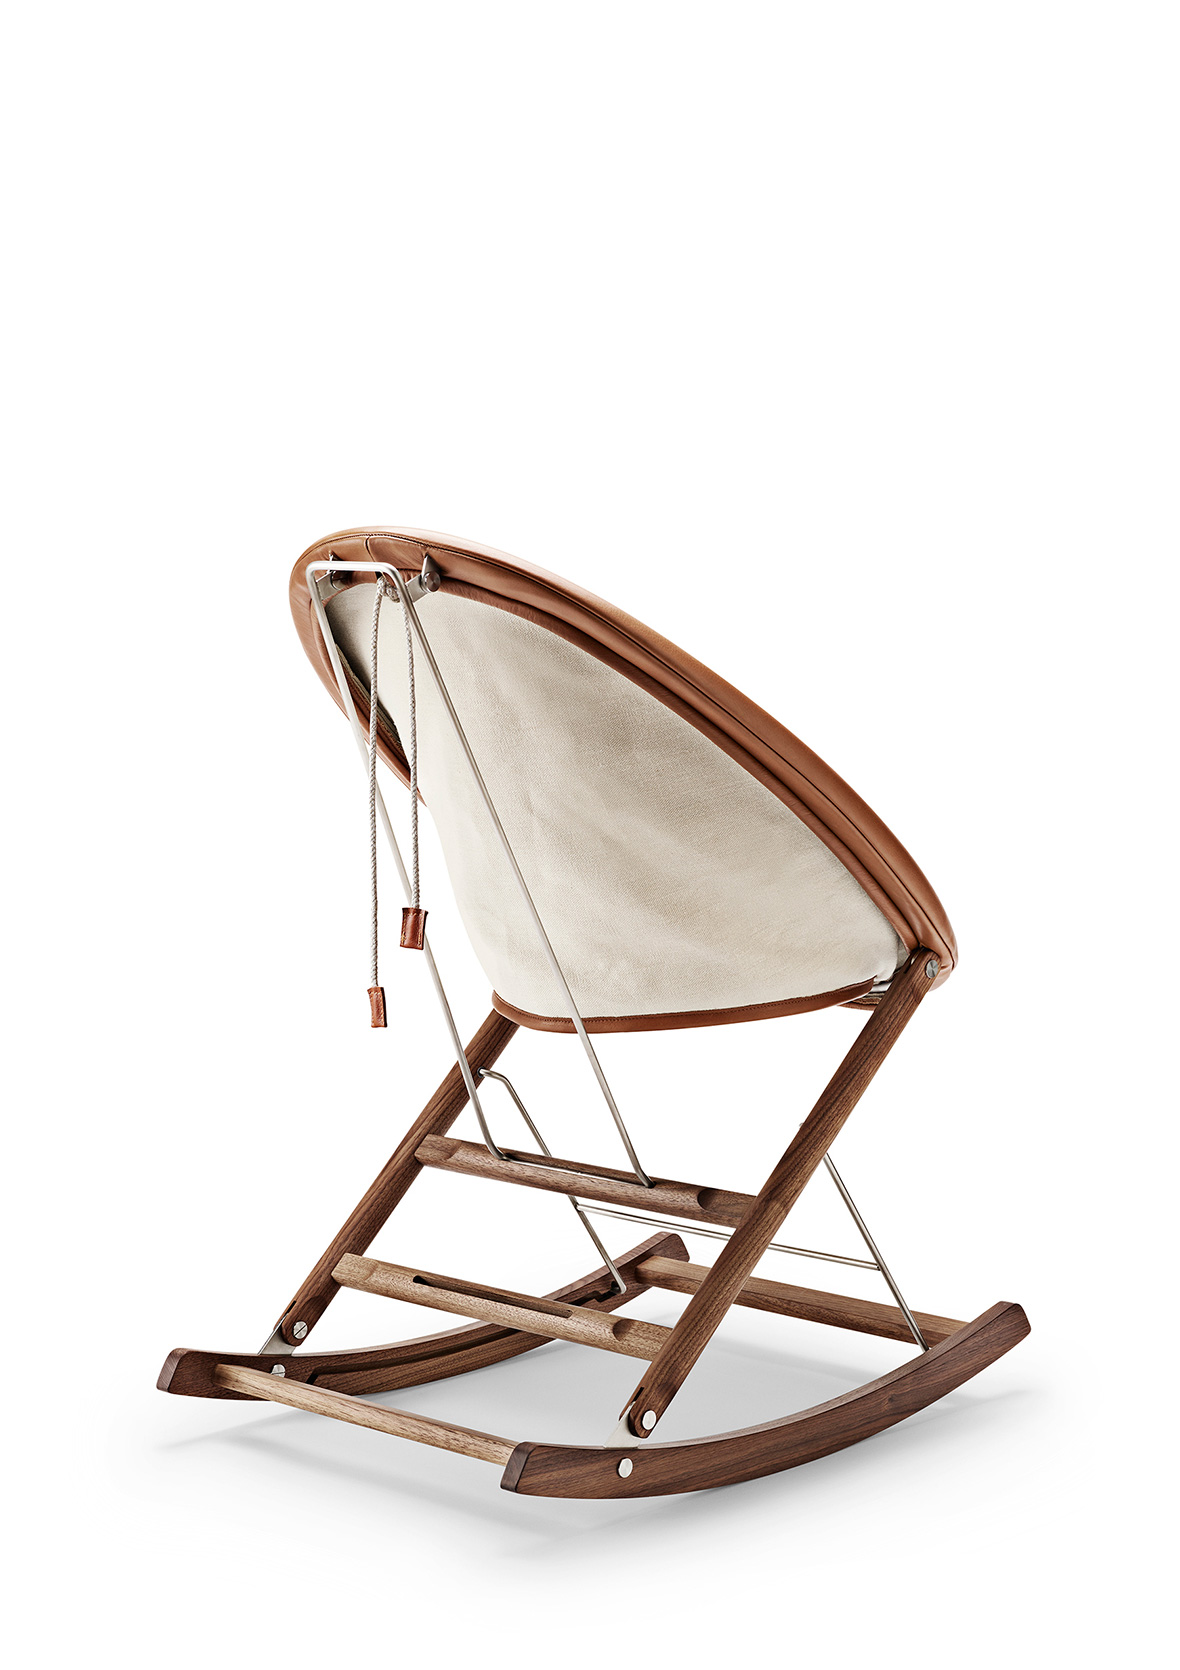 Rocking Nest Chair by Carl Hansen at Salone del Mobile 2017 | Yellowtrace